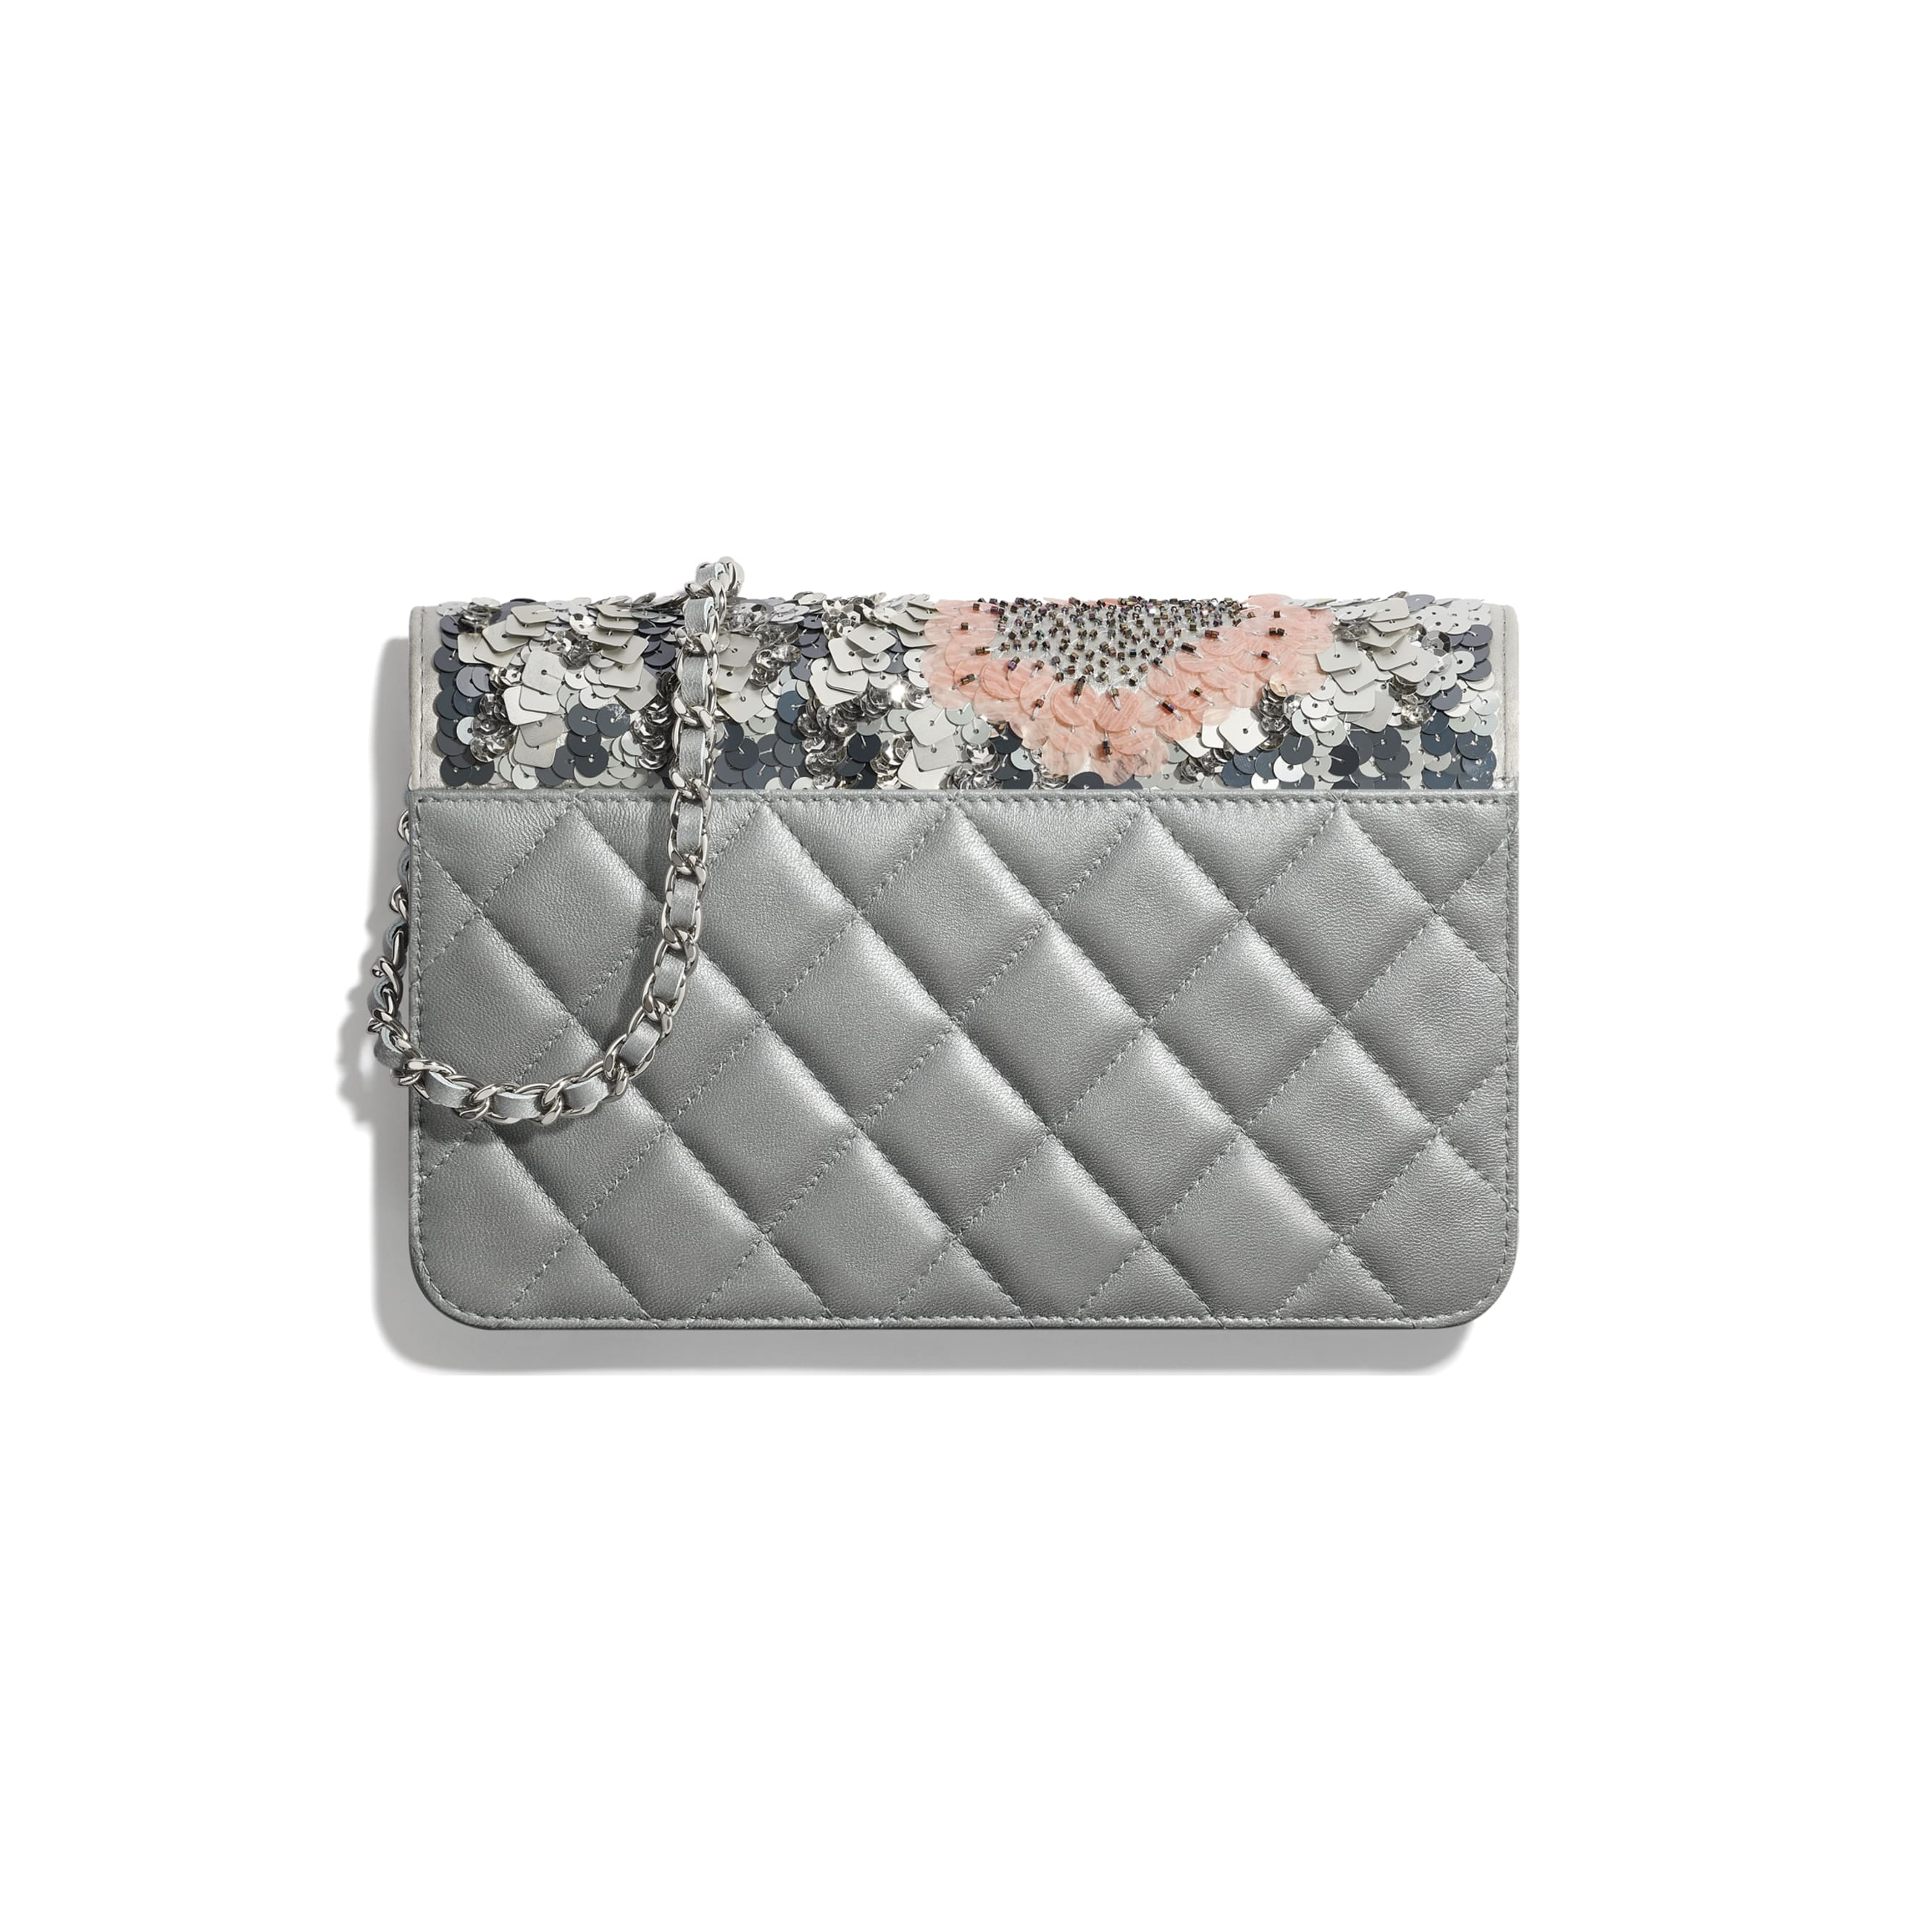 Wallet On Chain - Gray, Silver & Pink - Sequins, Glass Pearls & Silver-Tone Metal - CHANEL - Alternative view - see standard sized version